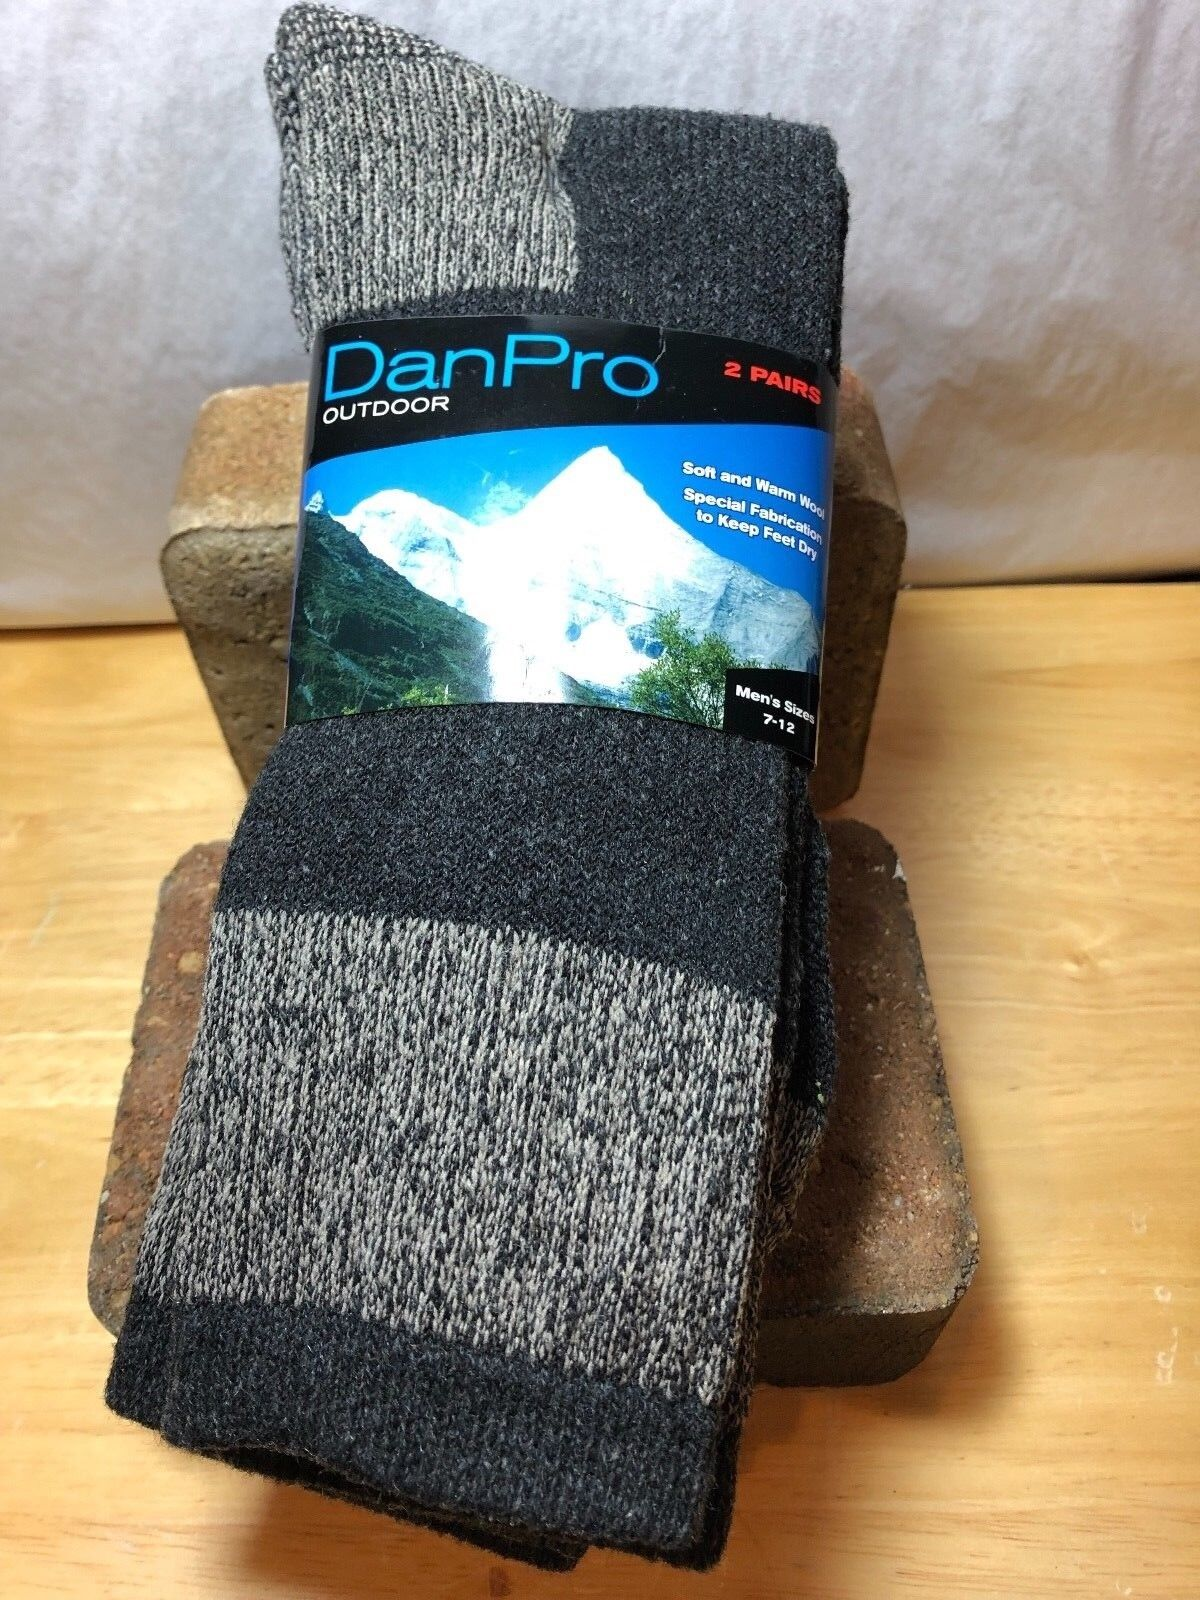 2 PAIRS DANPRO OUTDOOR MIXED WOOL SOFT AND WARM MENS  CREW SOCKS SIZE 7-12 Clothing, Shoes & Accessories